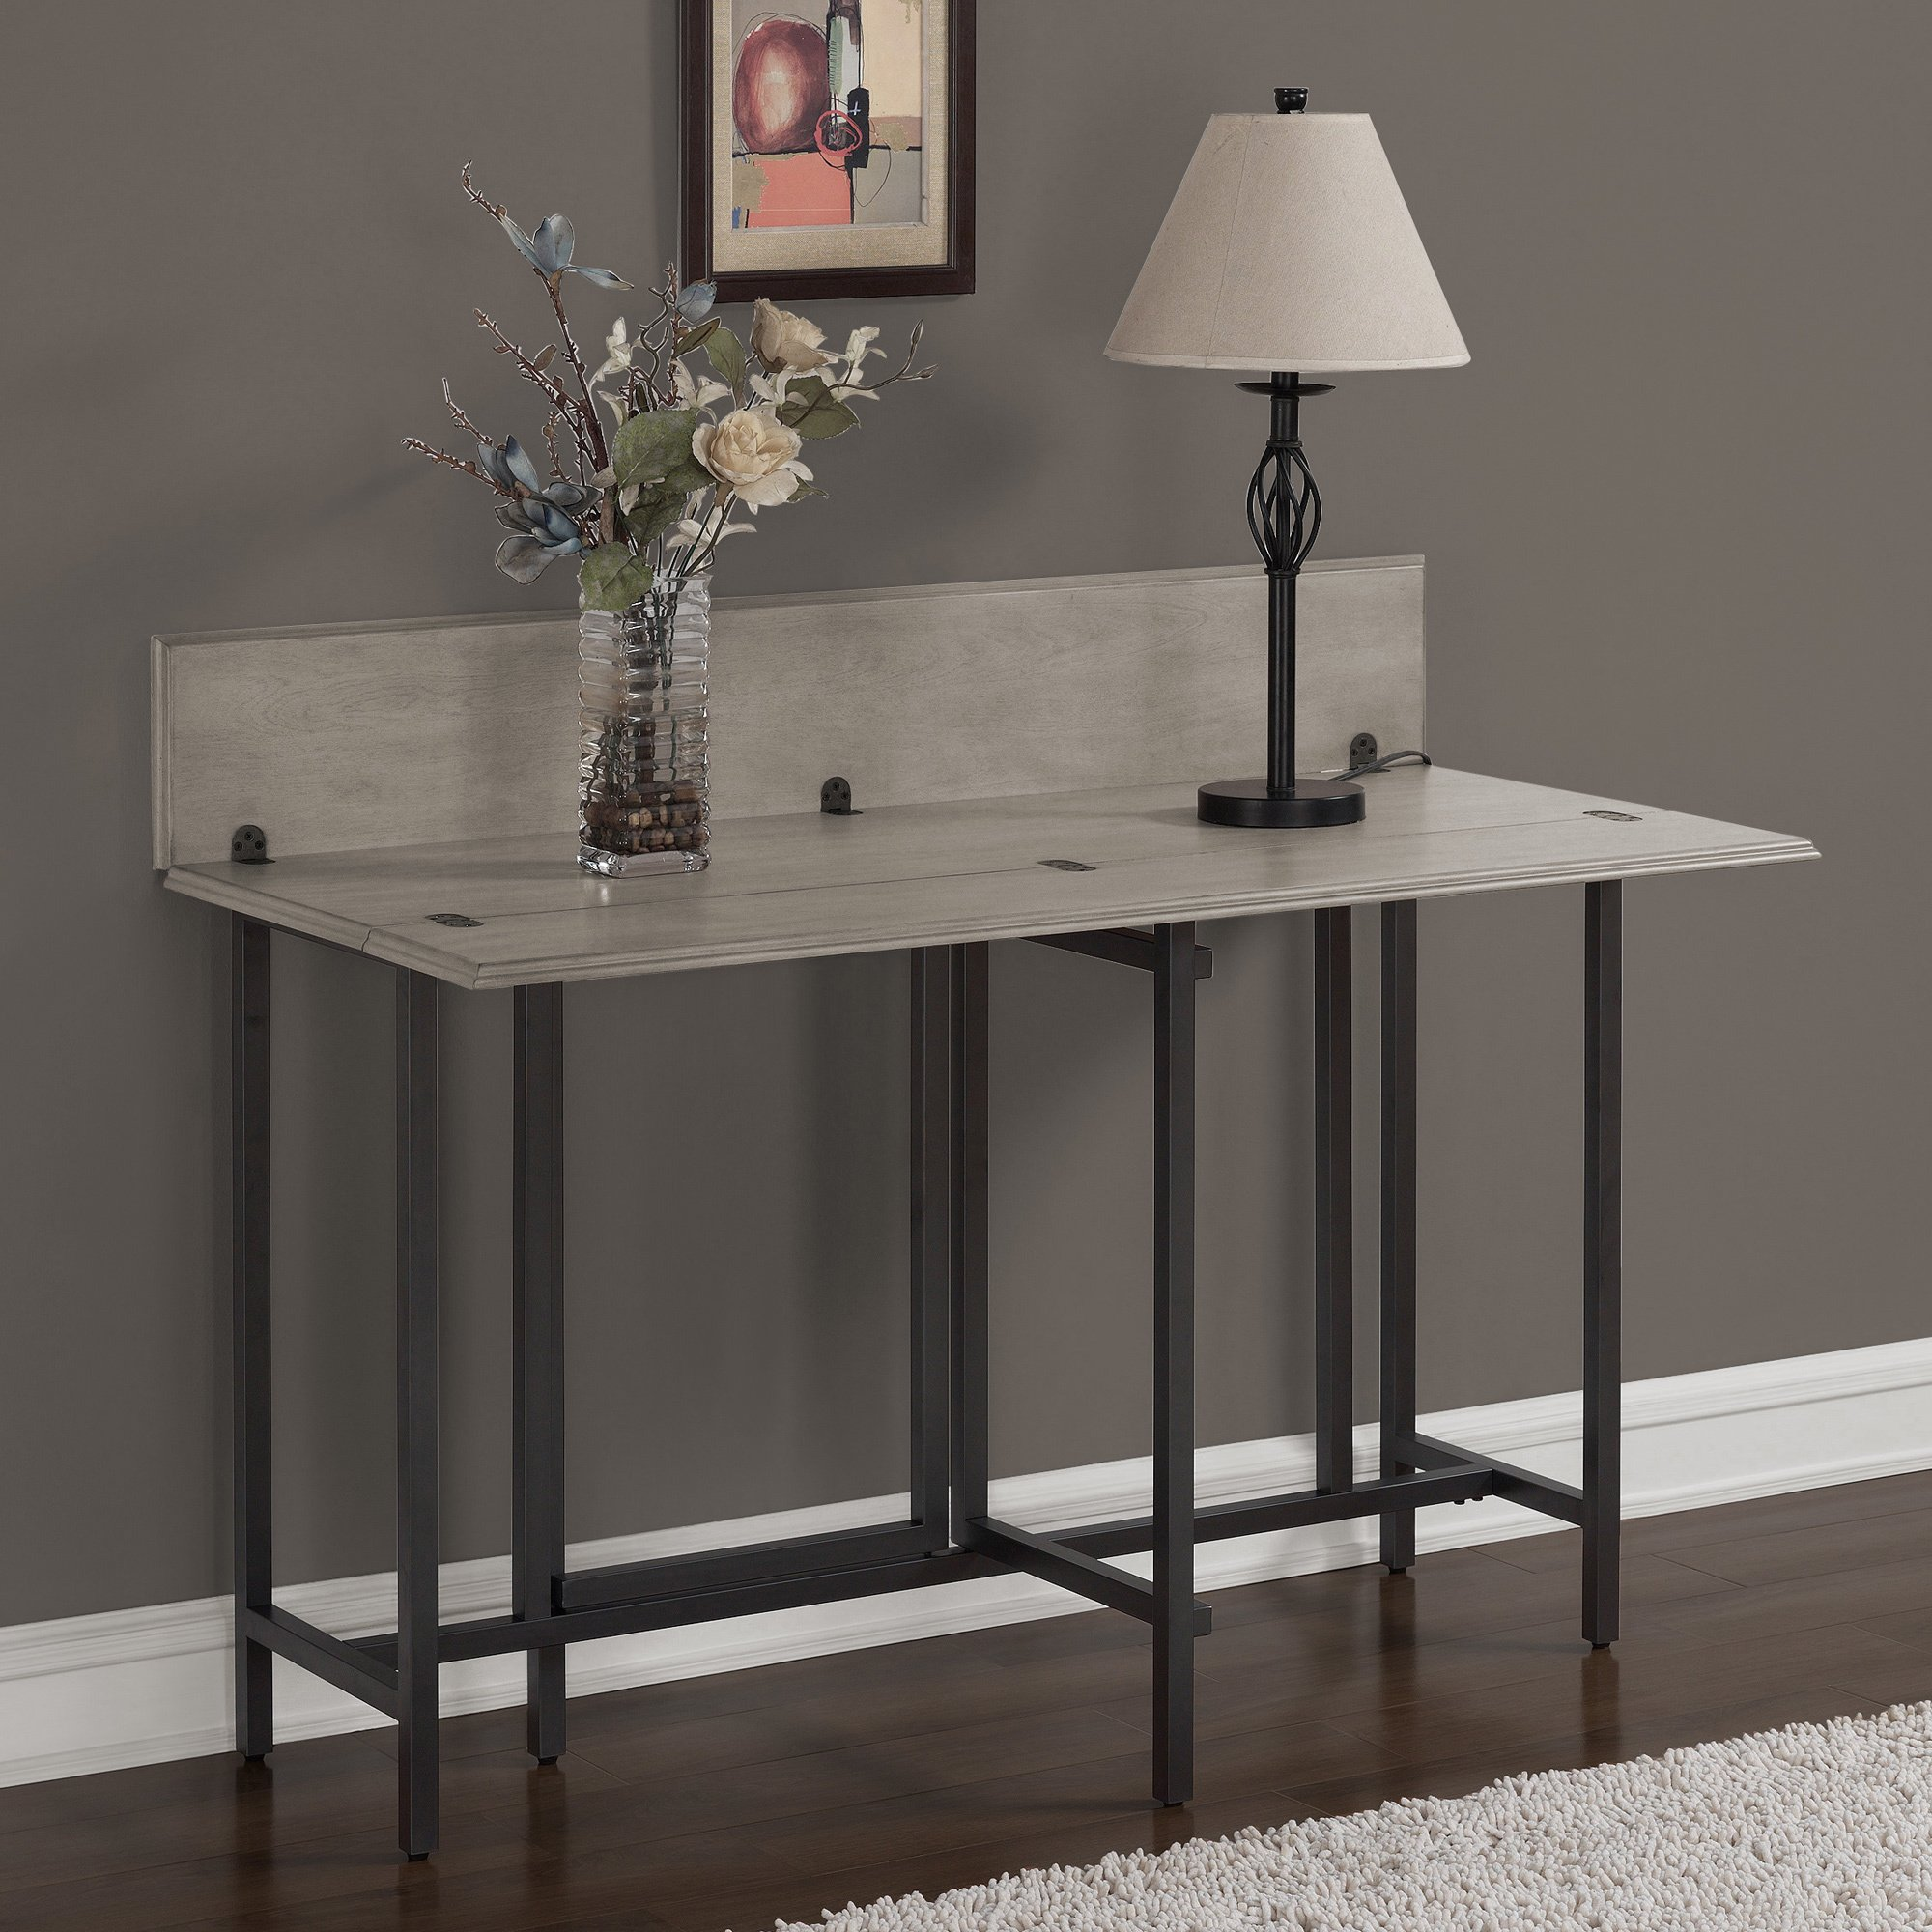 Convertible Dining Table Wood Contemporary Expandable Home Console Kitchen Table by I Love Living (Image #5)